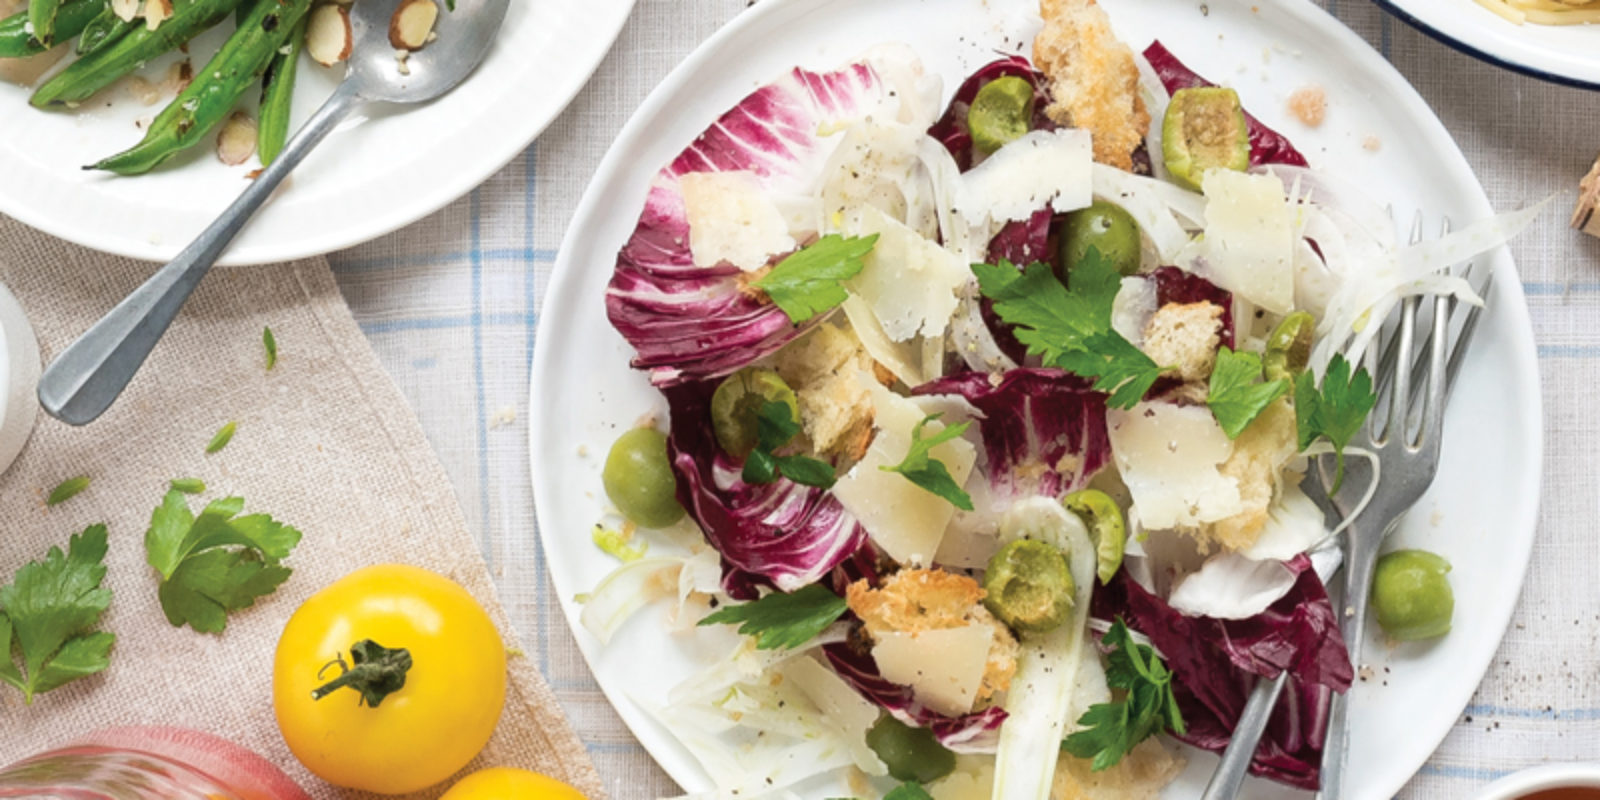 Radicchio, Fennel and Olive Panzanella Salad